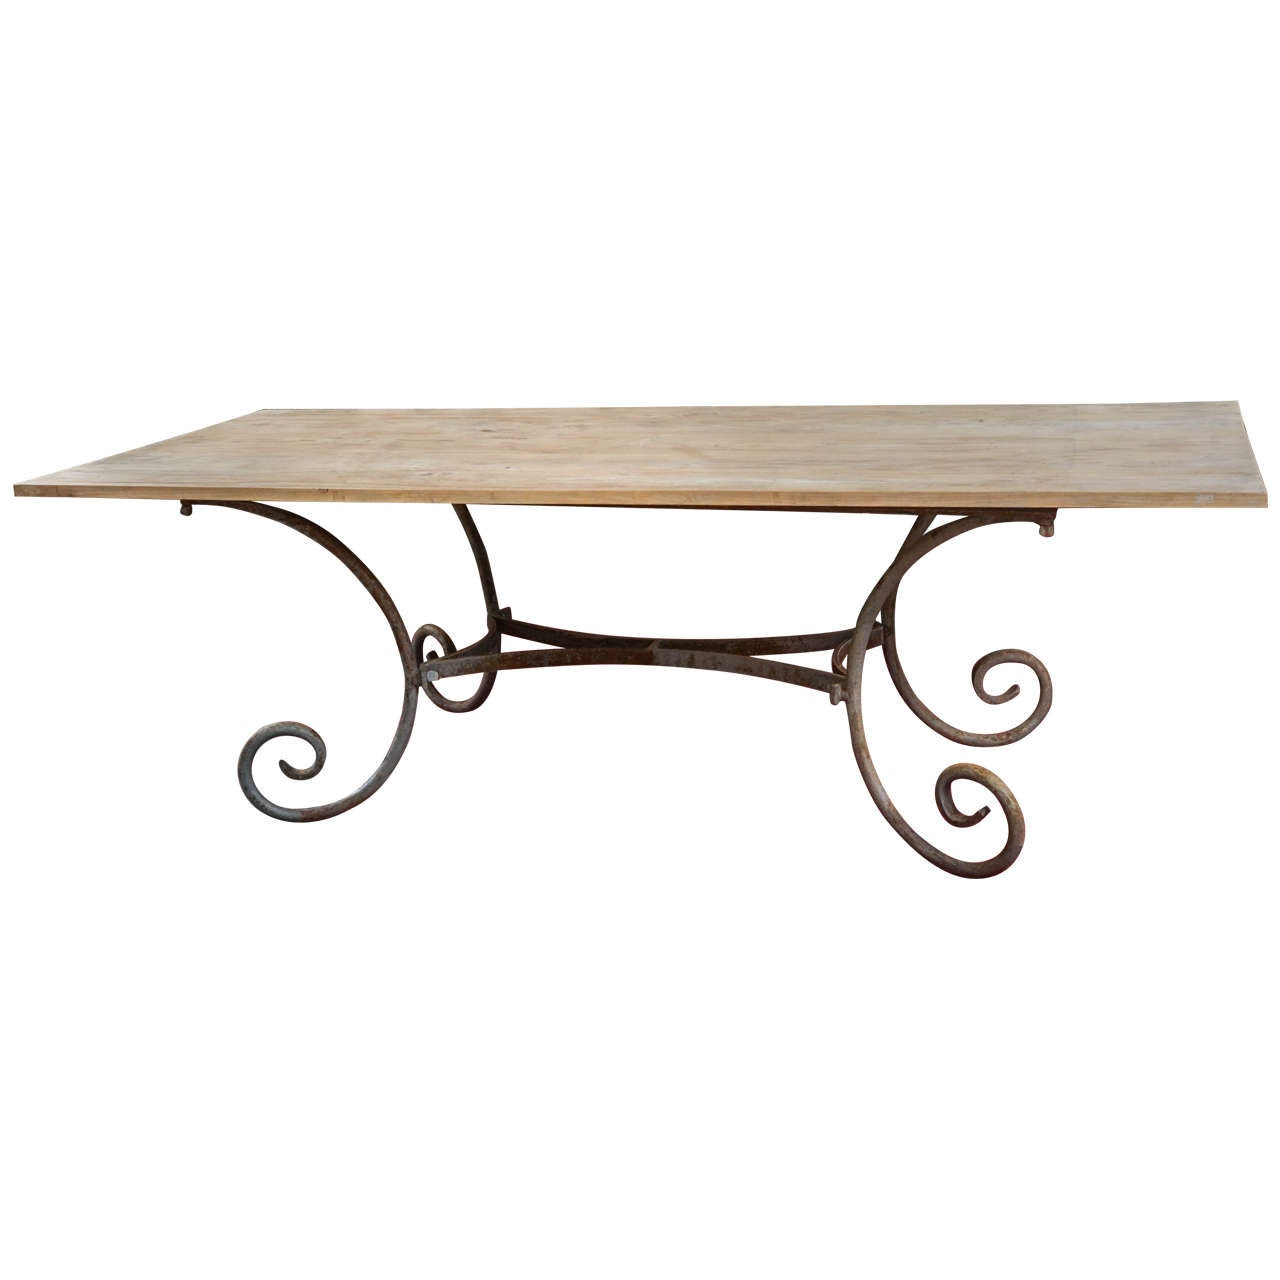 Indoor or outdoor french wrought iron table base teak top for Wrought iron side table base